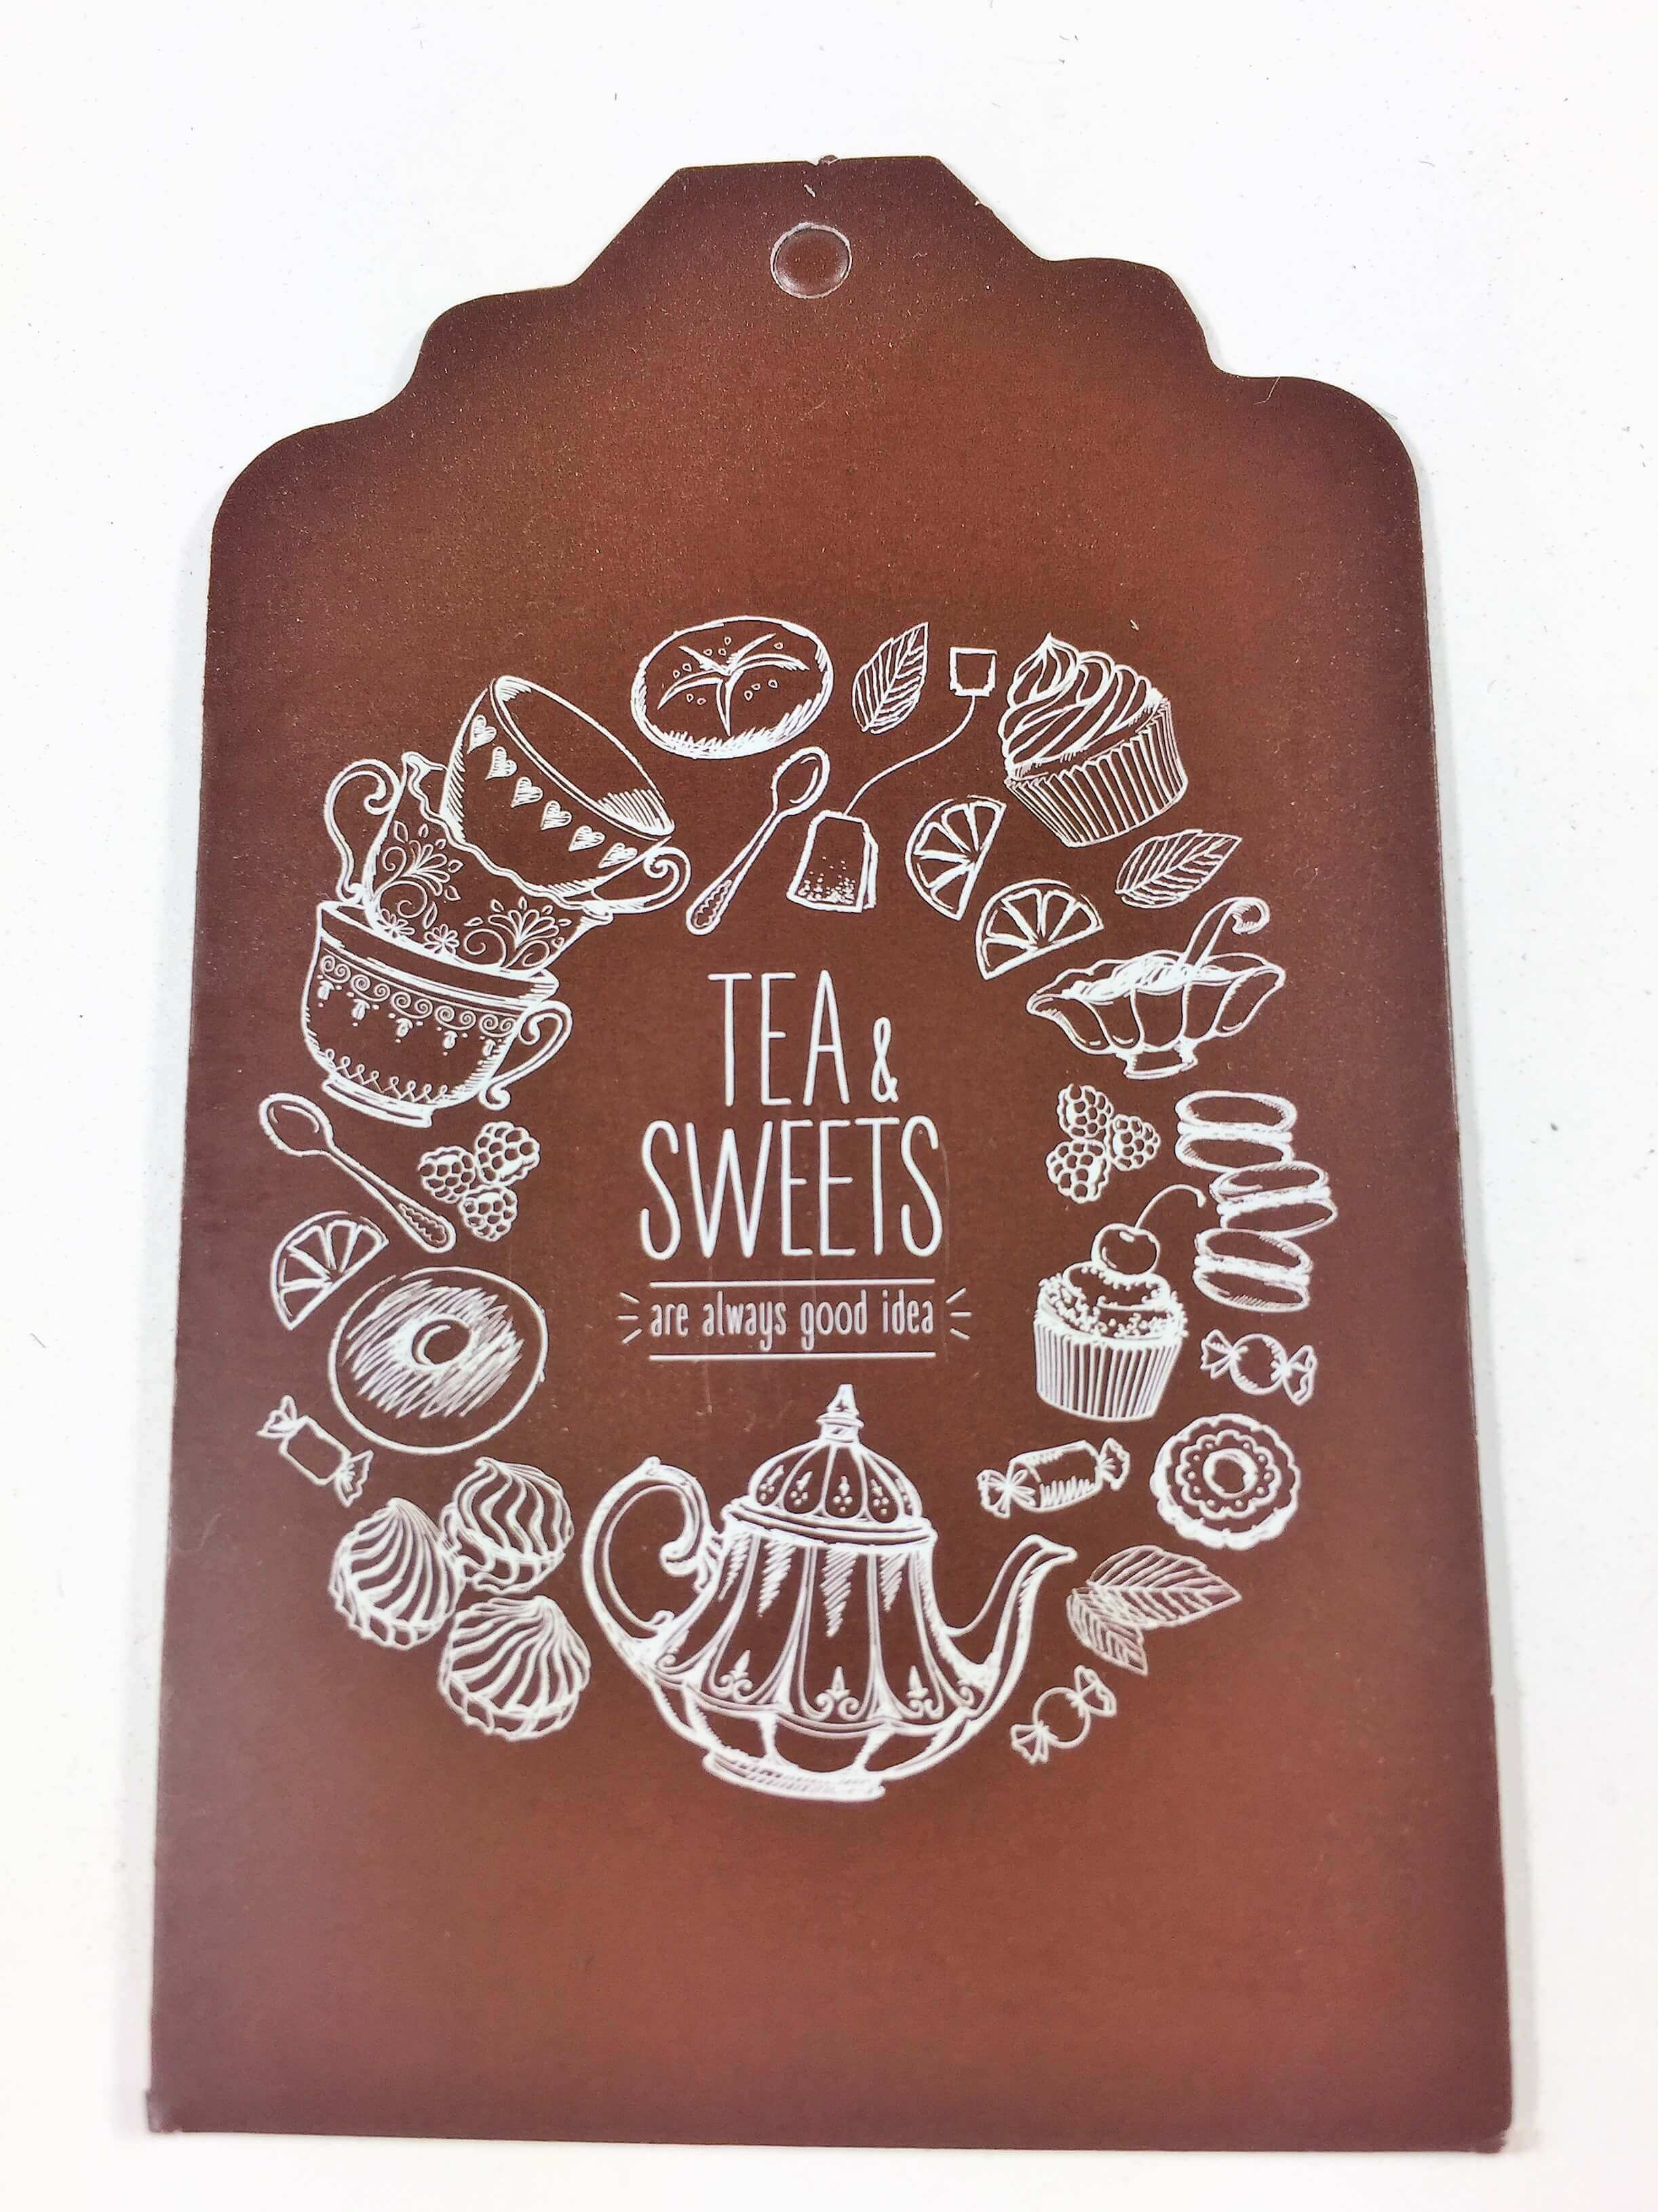 Tea & Sweets - Brown with white text